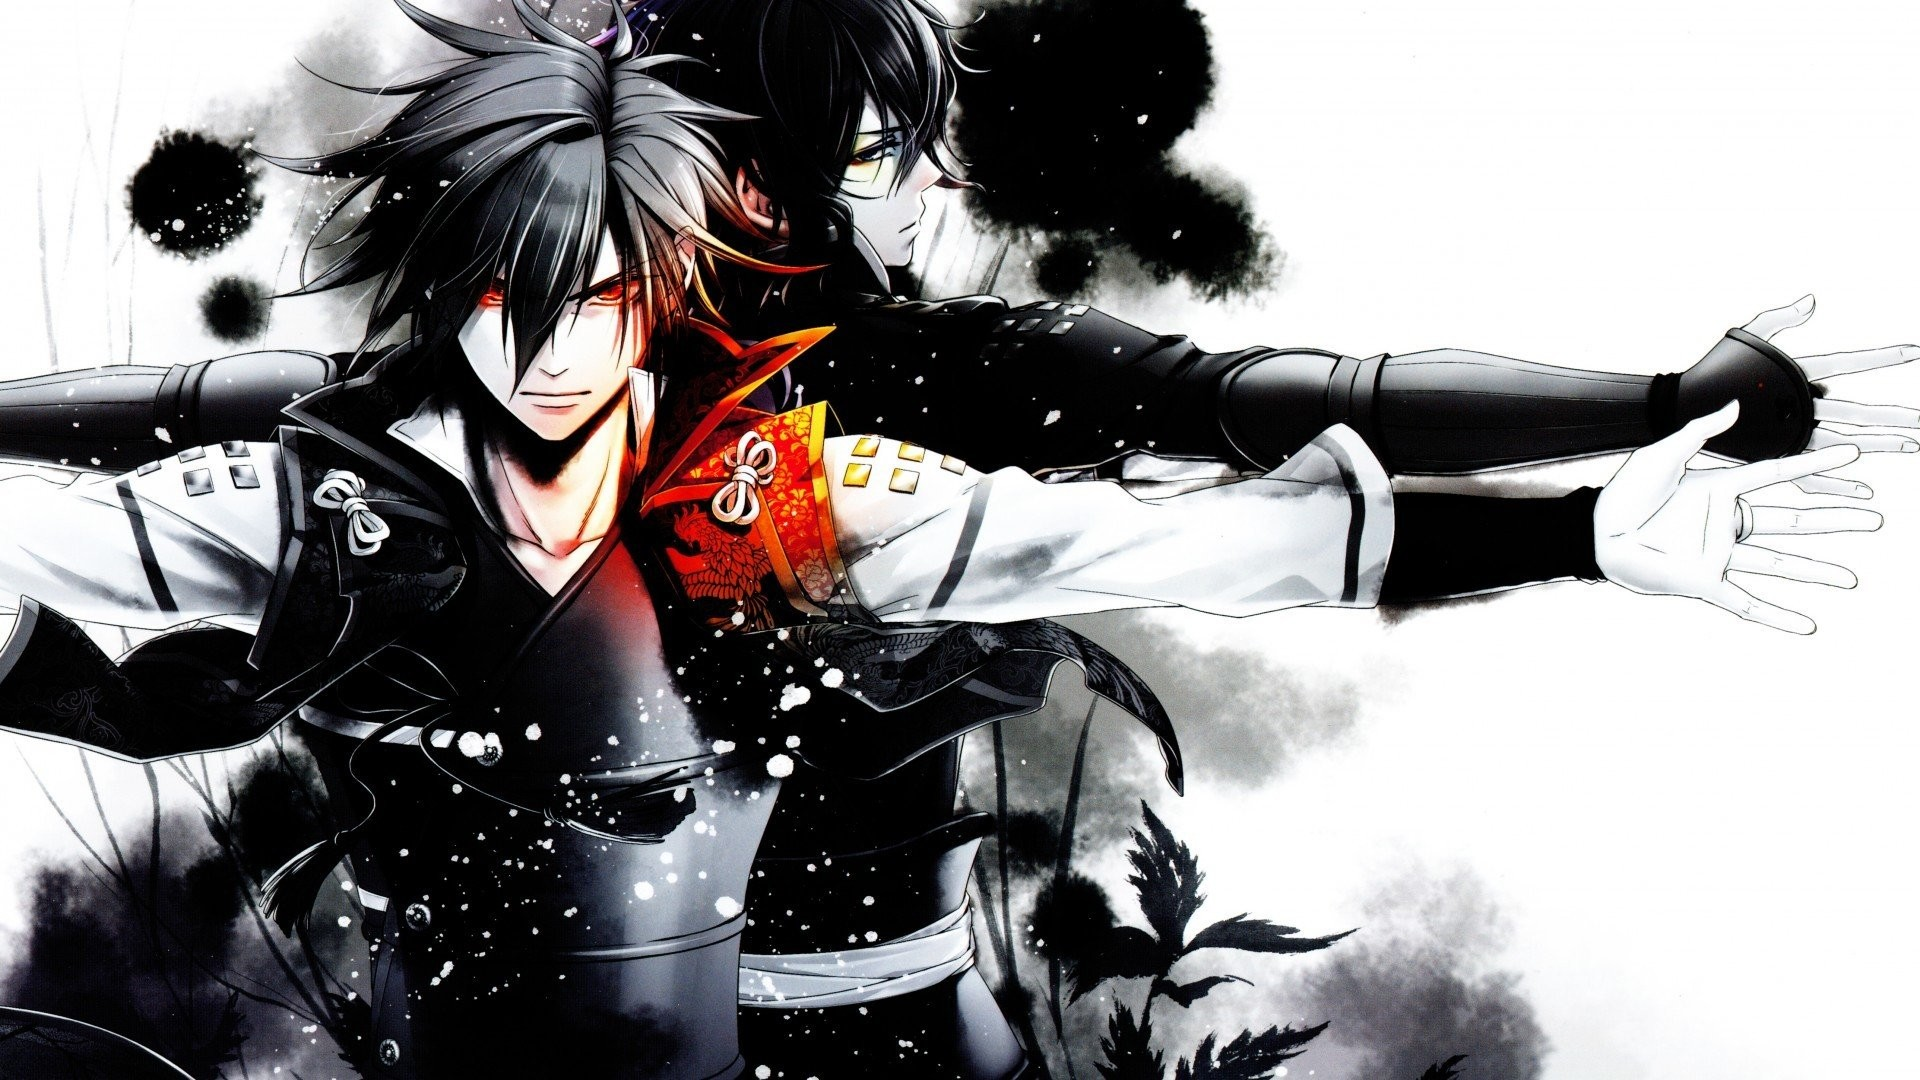 Anime cool guy wallpaper 58 images - Cool wallpapers for guys ...